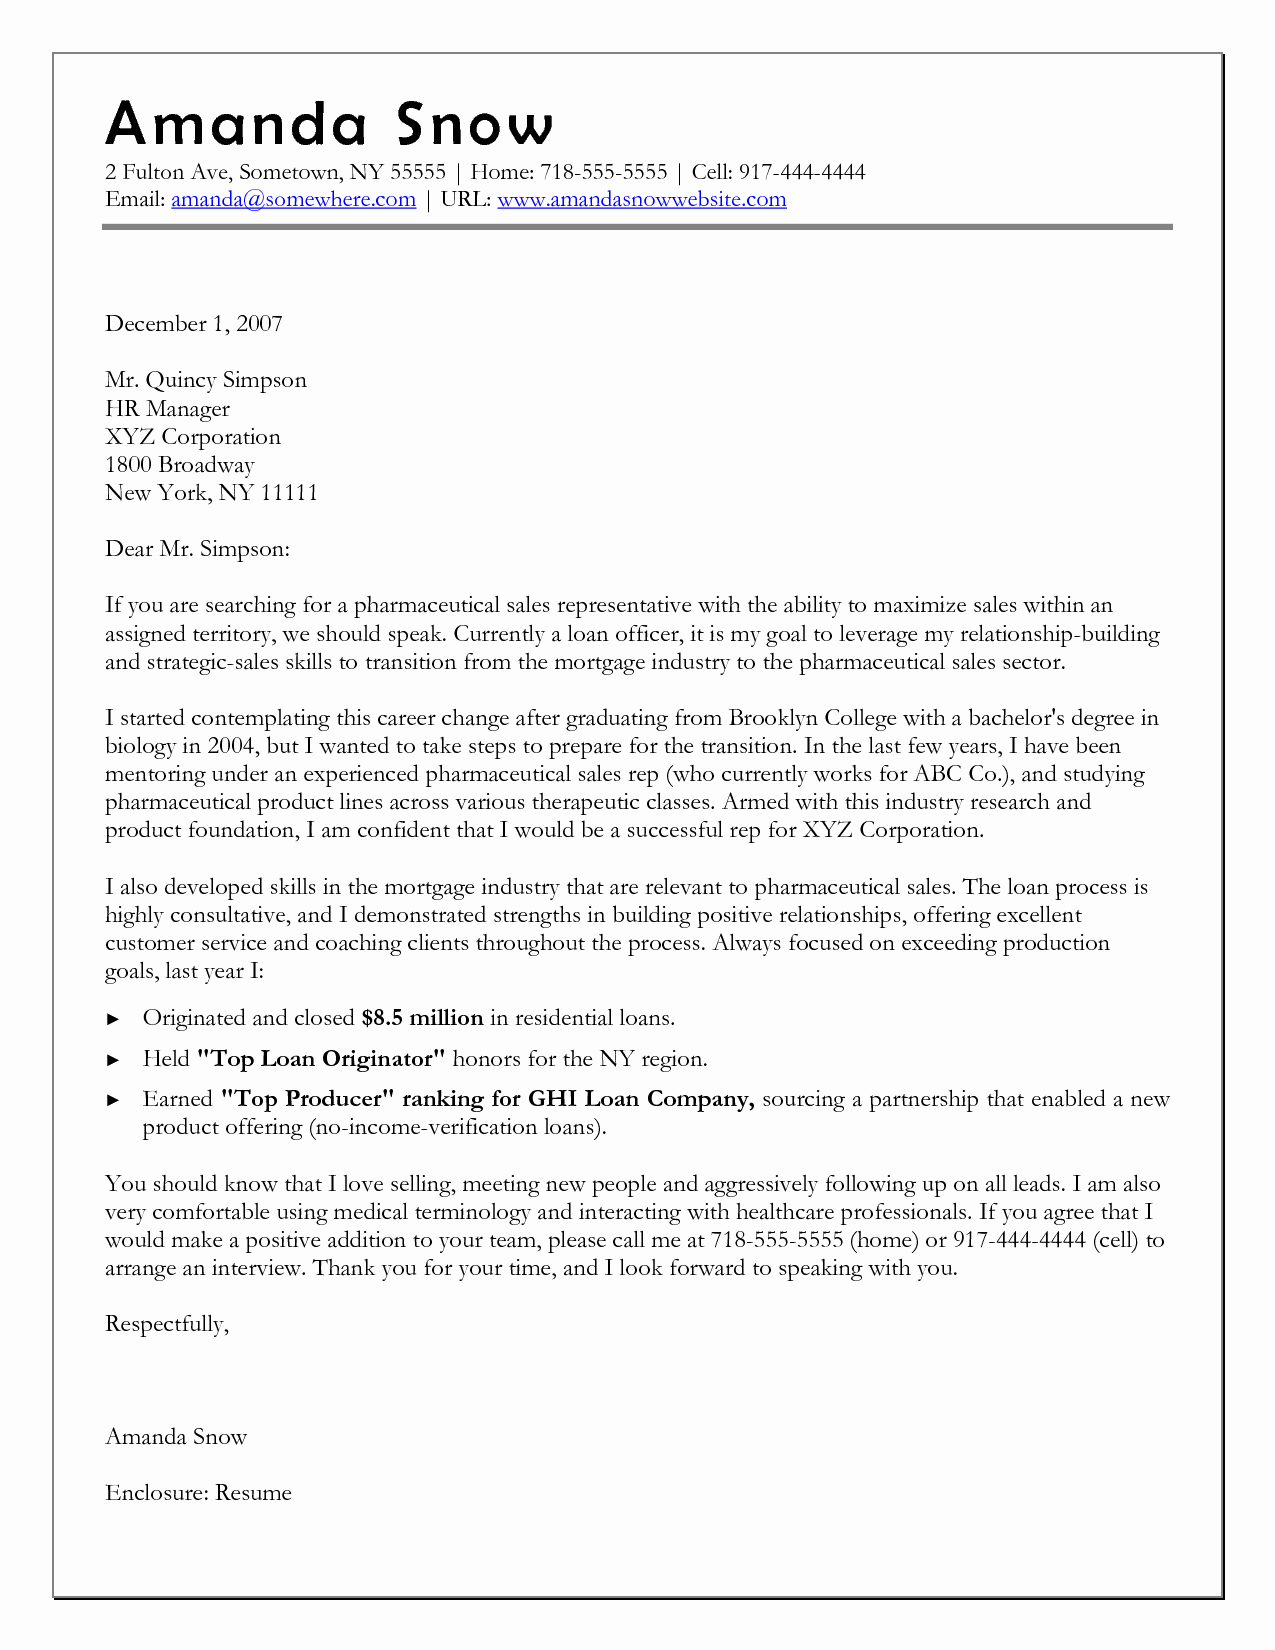 Career Change Cover Letters Elegant Cover Letter Template when Changing Careers